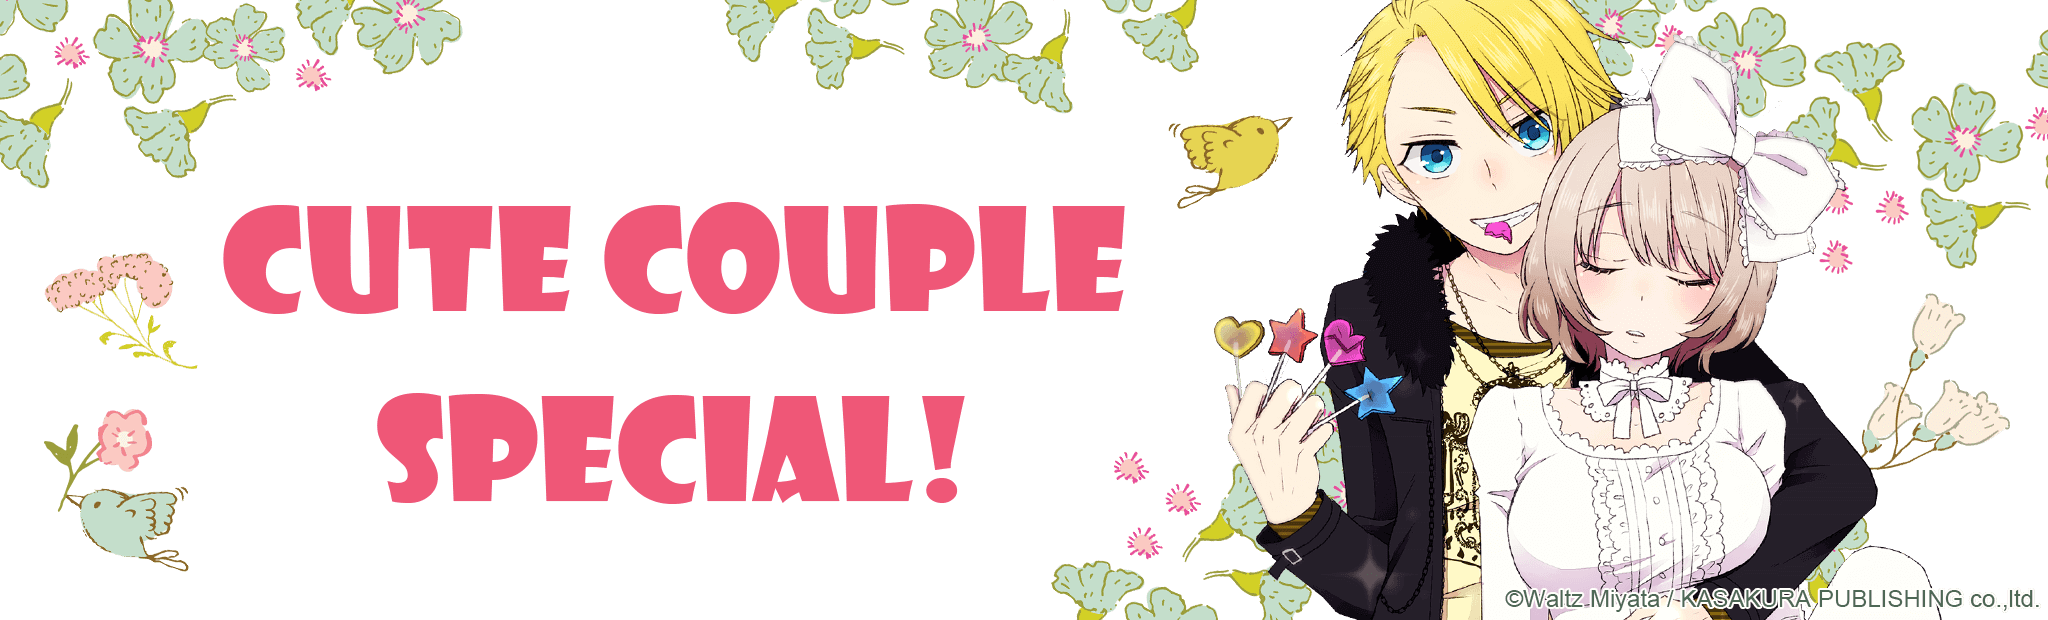 Cute Couple Special!